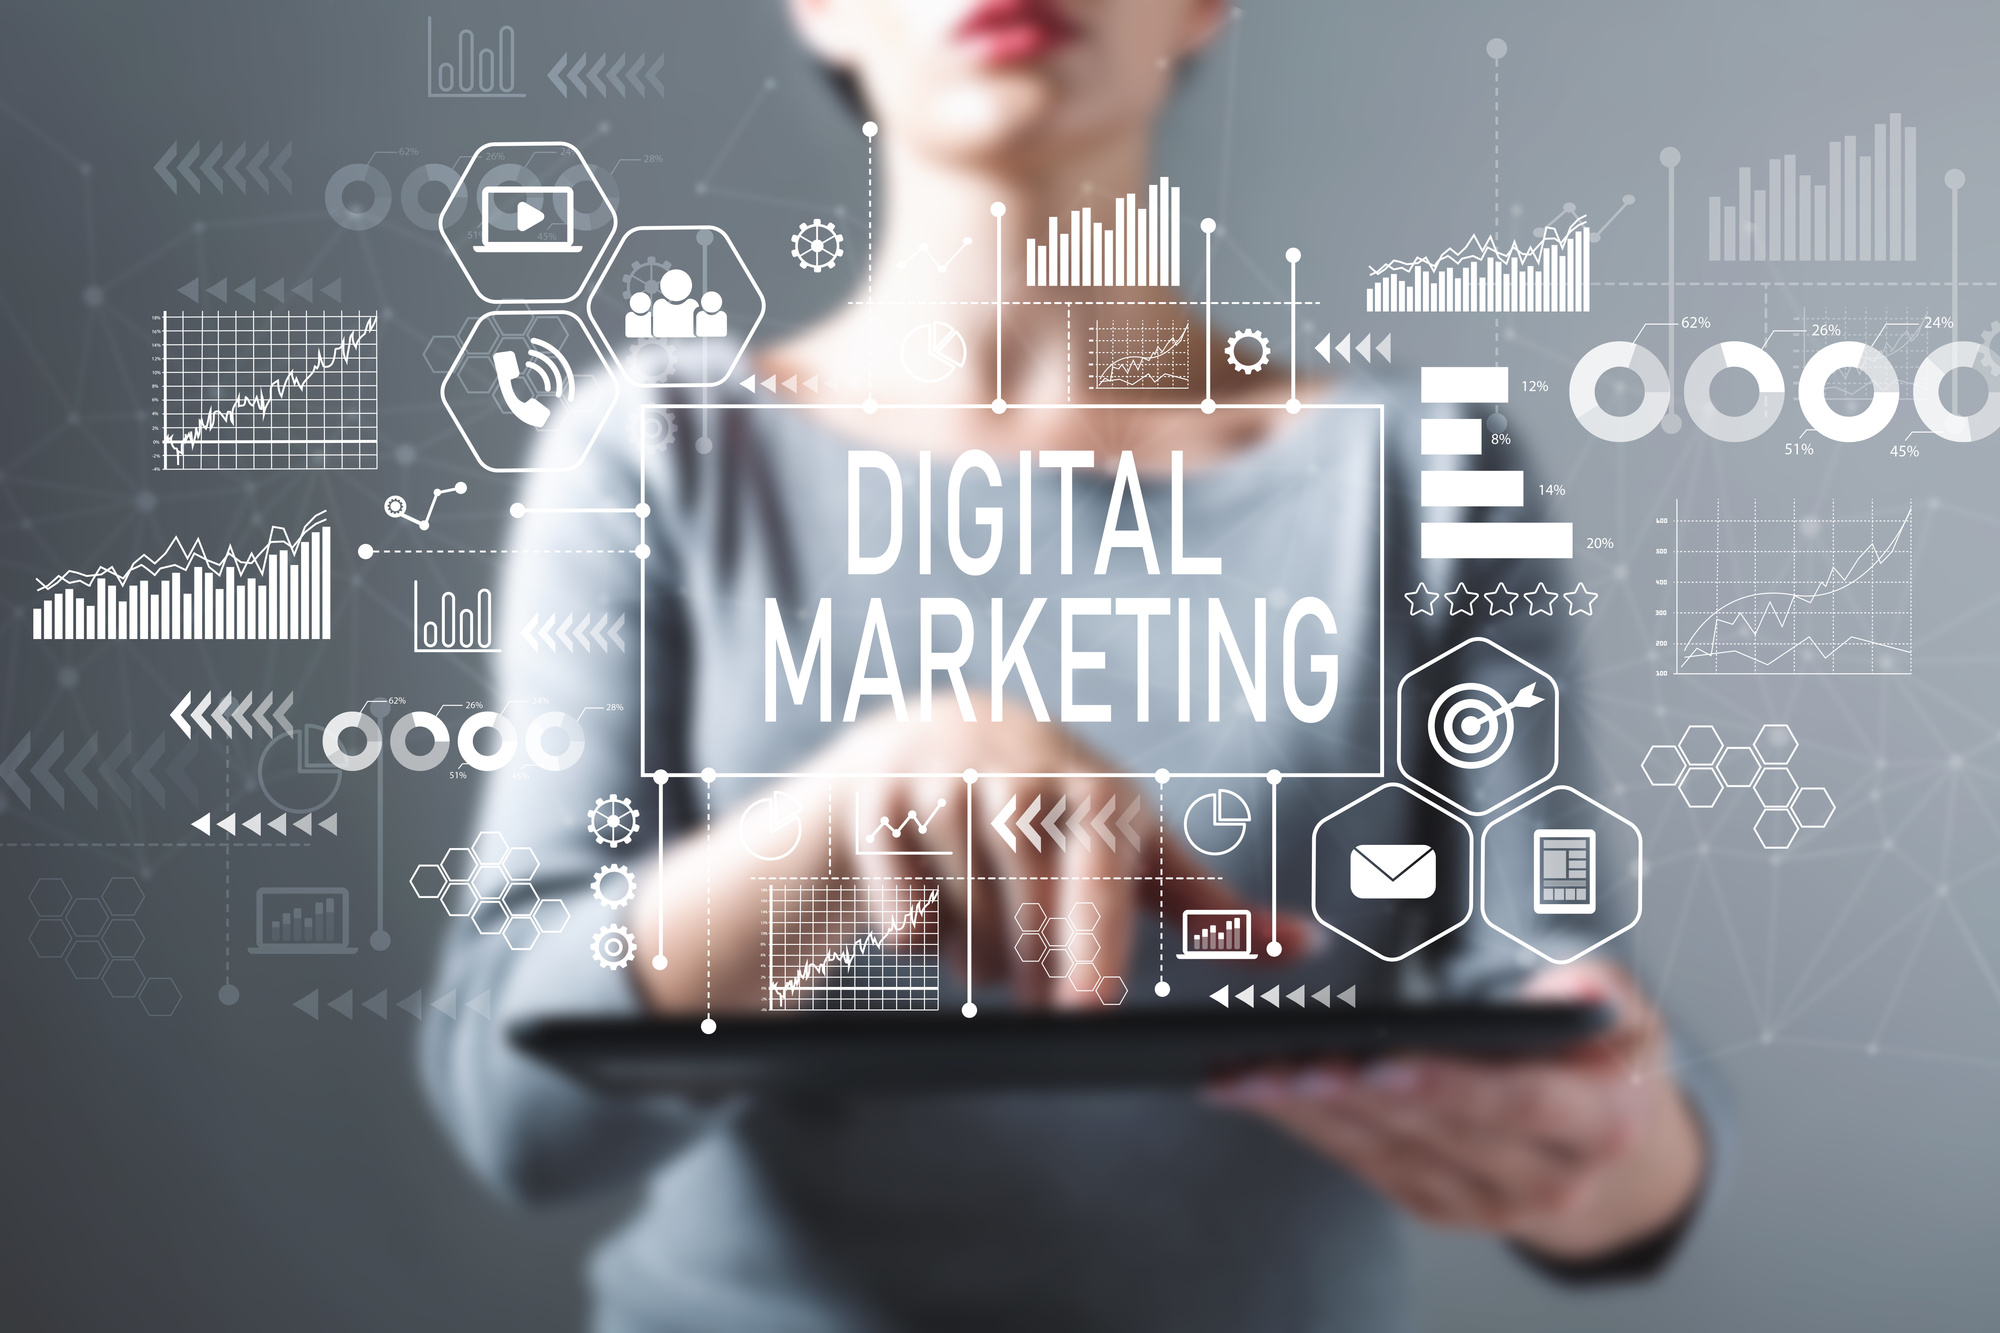 5 Types of Digital Marketing for Your Business - MAD GROUP